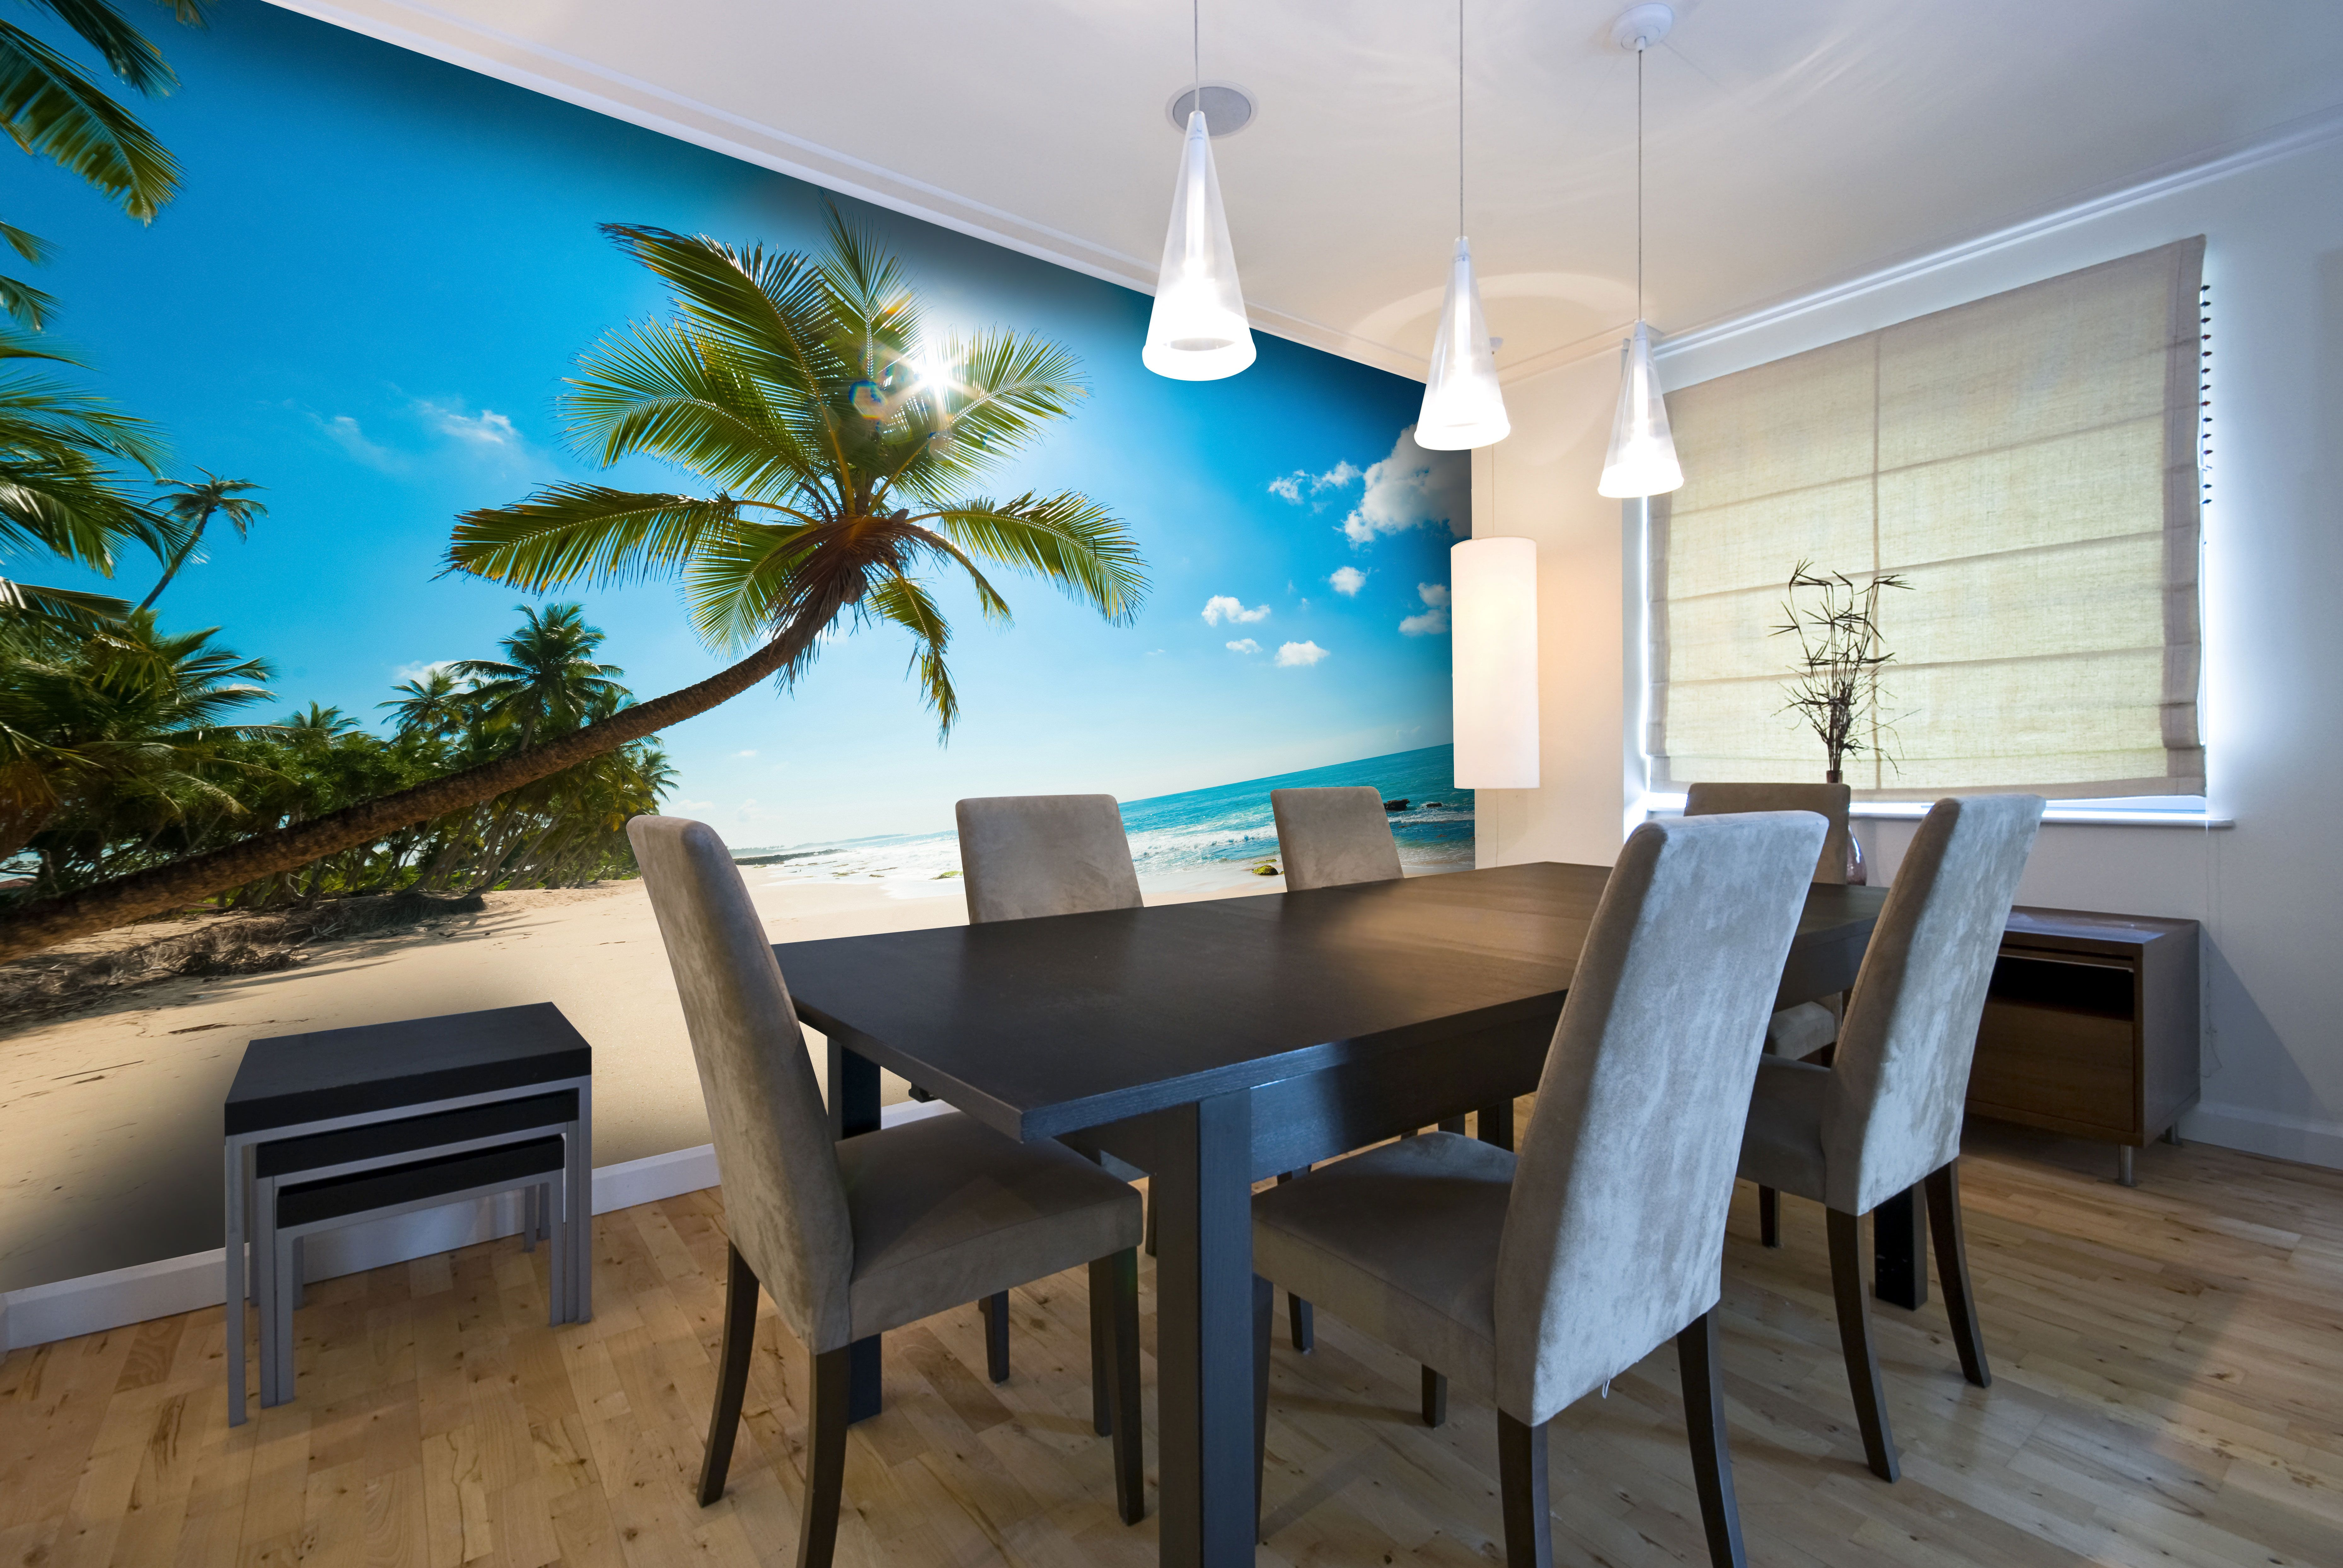 Tropical beaches wall mural in kitchen (With images